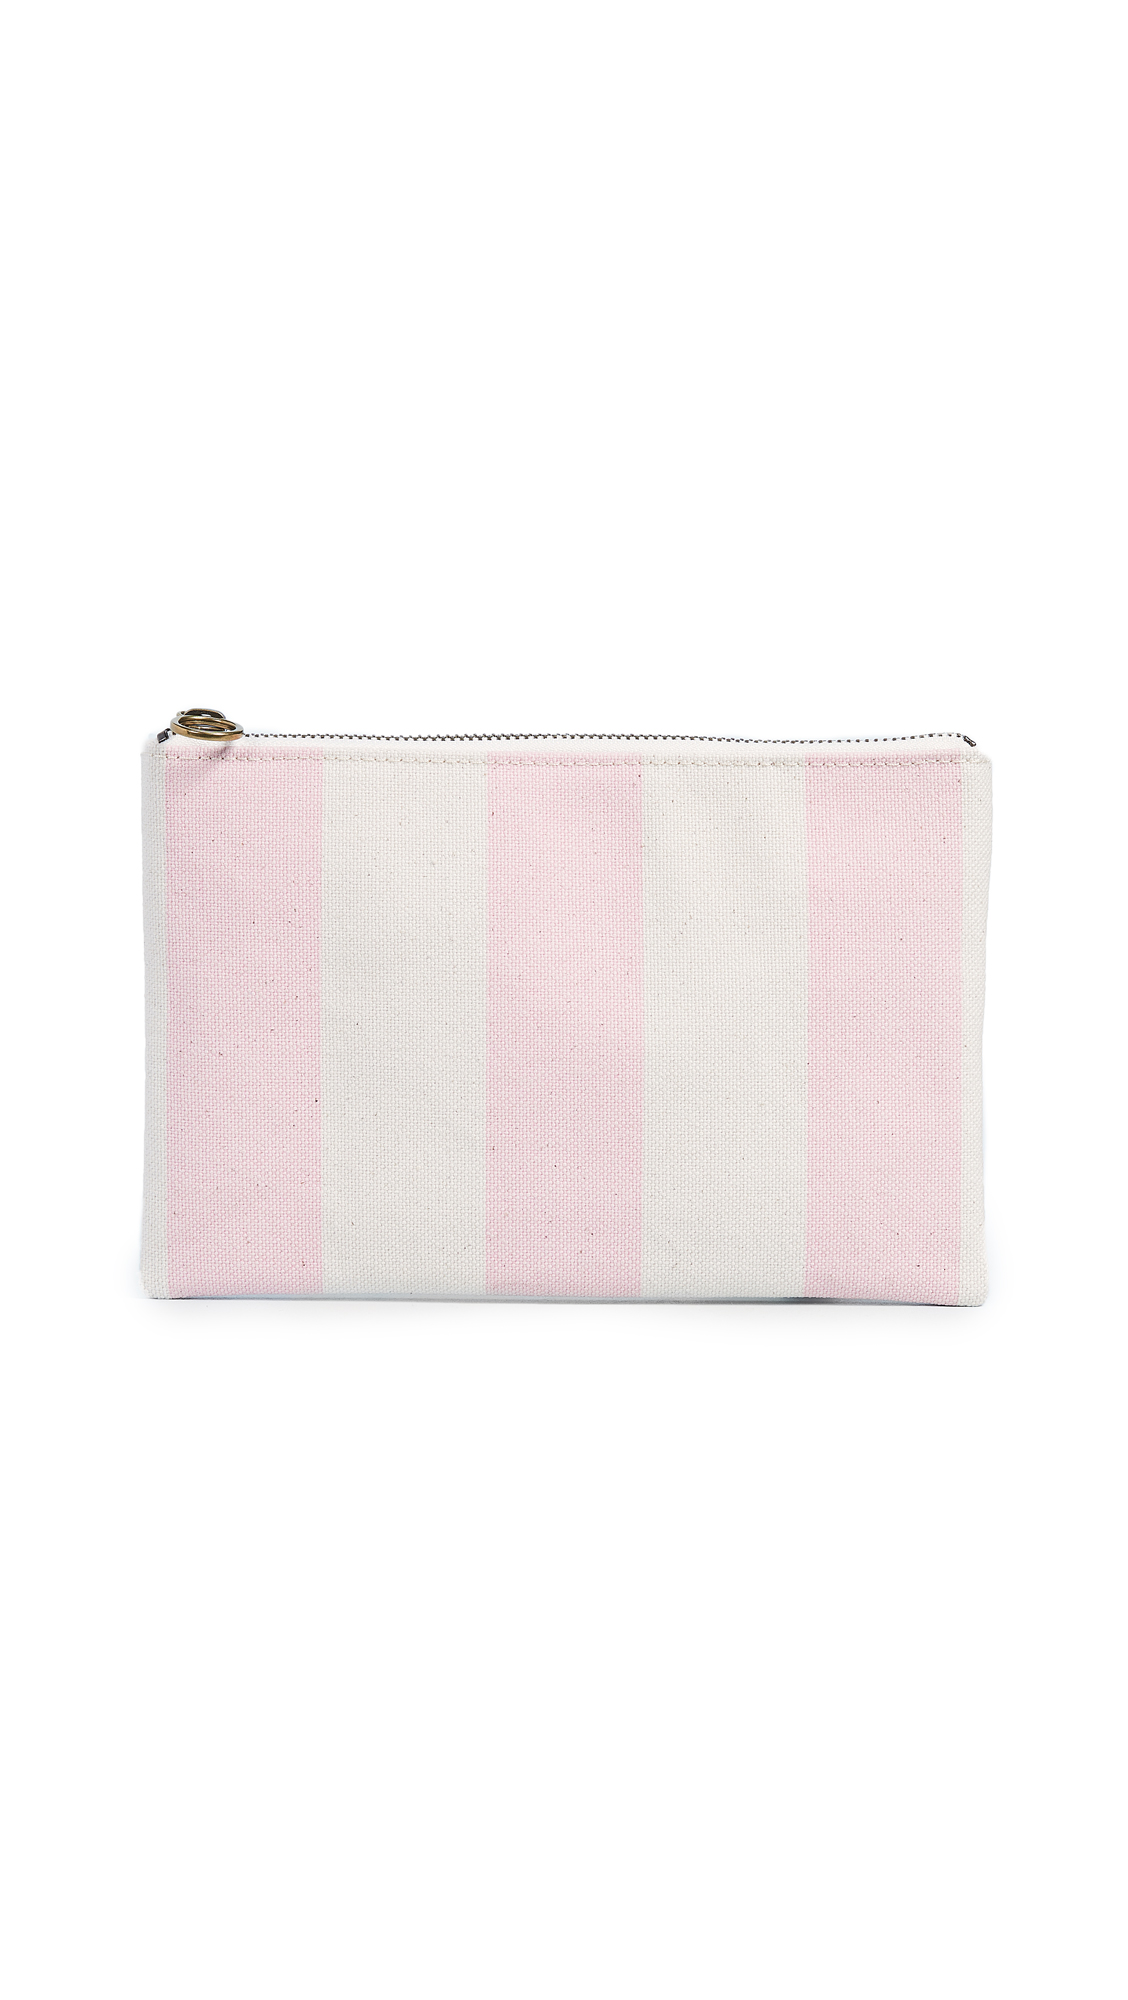 CANVAS STRIPES FLAT POUCH from Shopbop